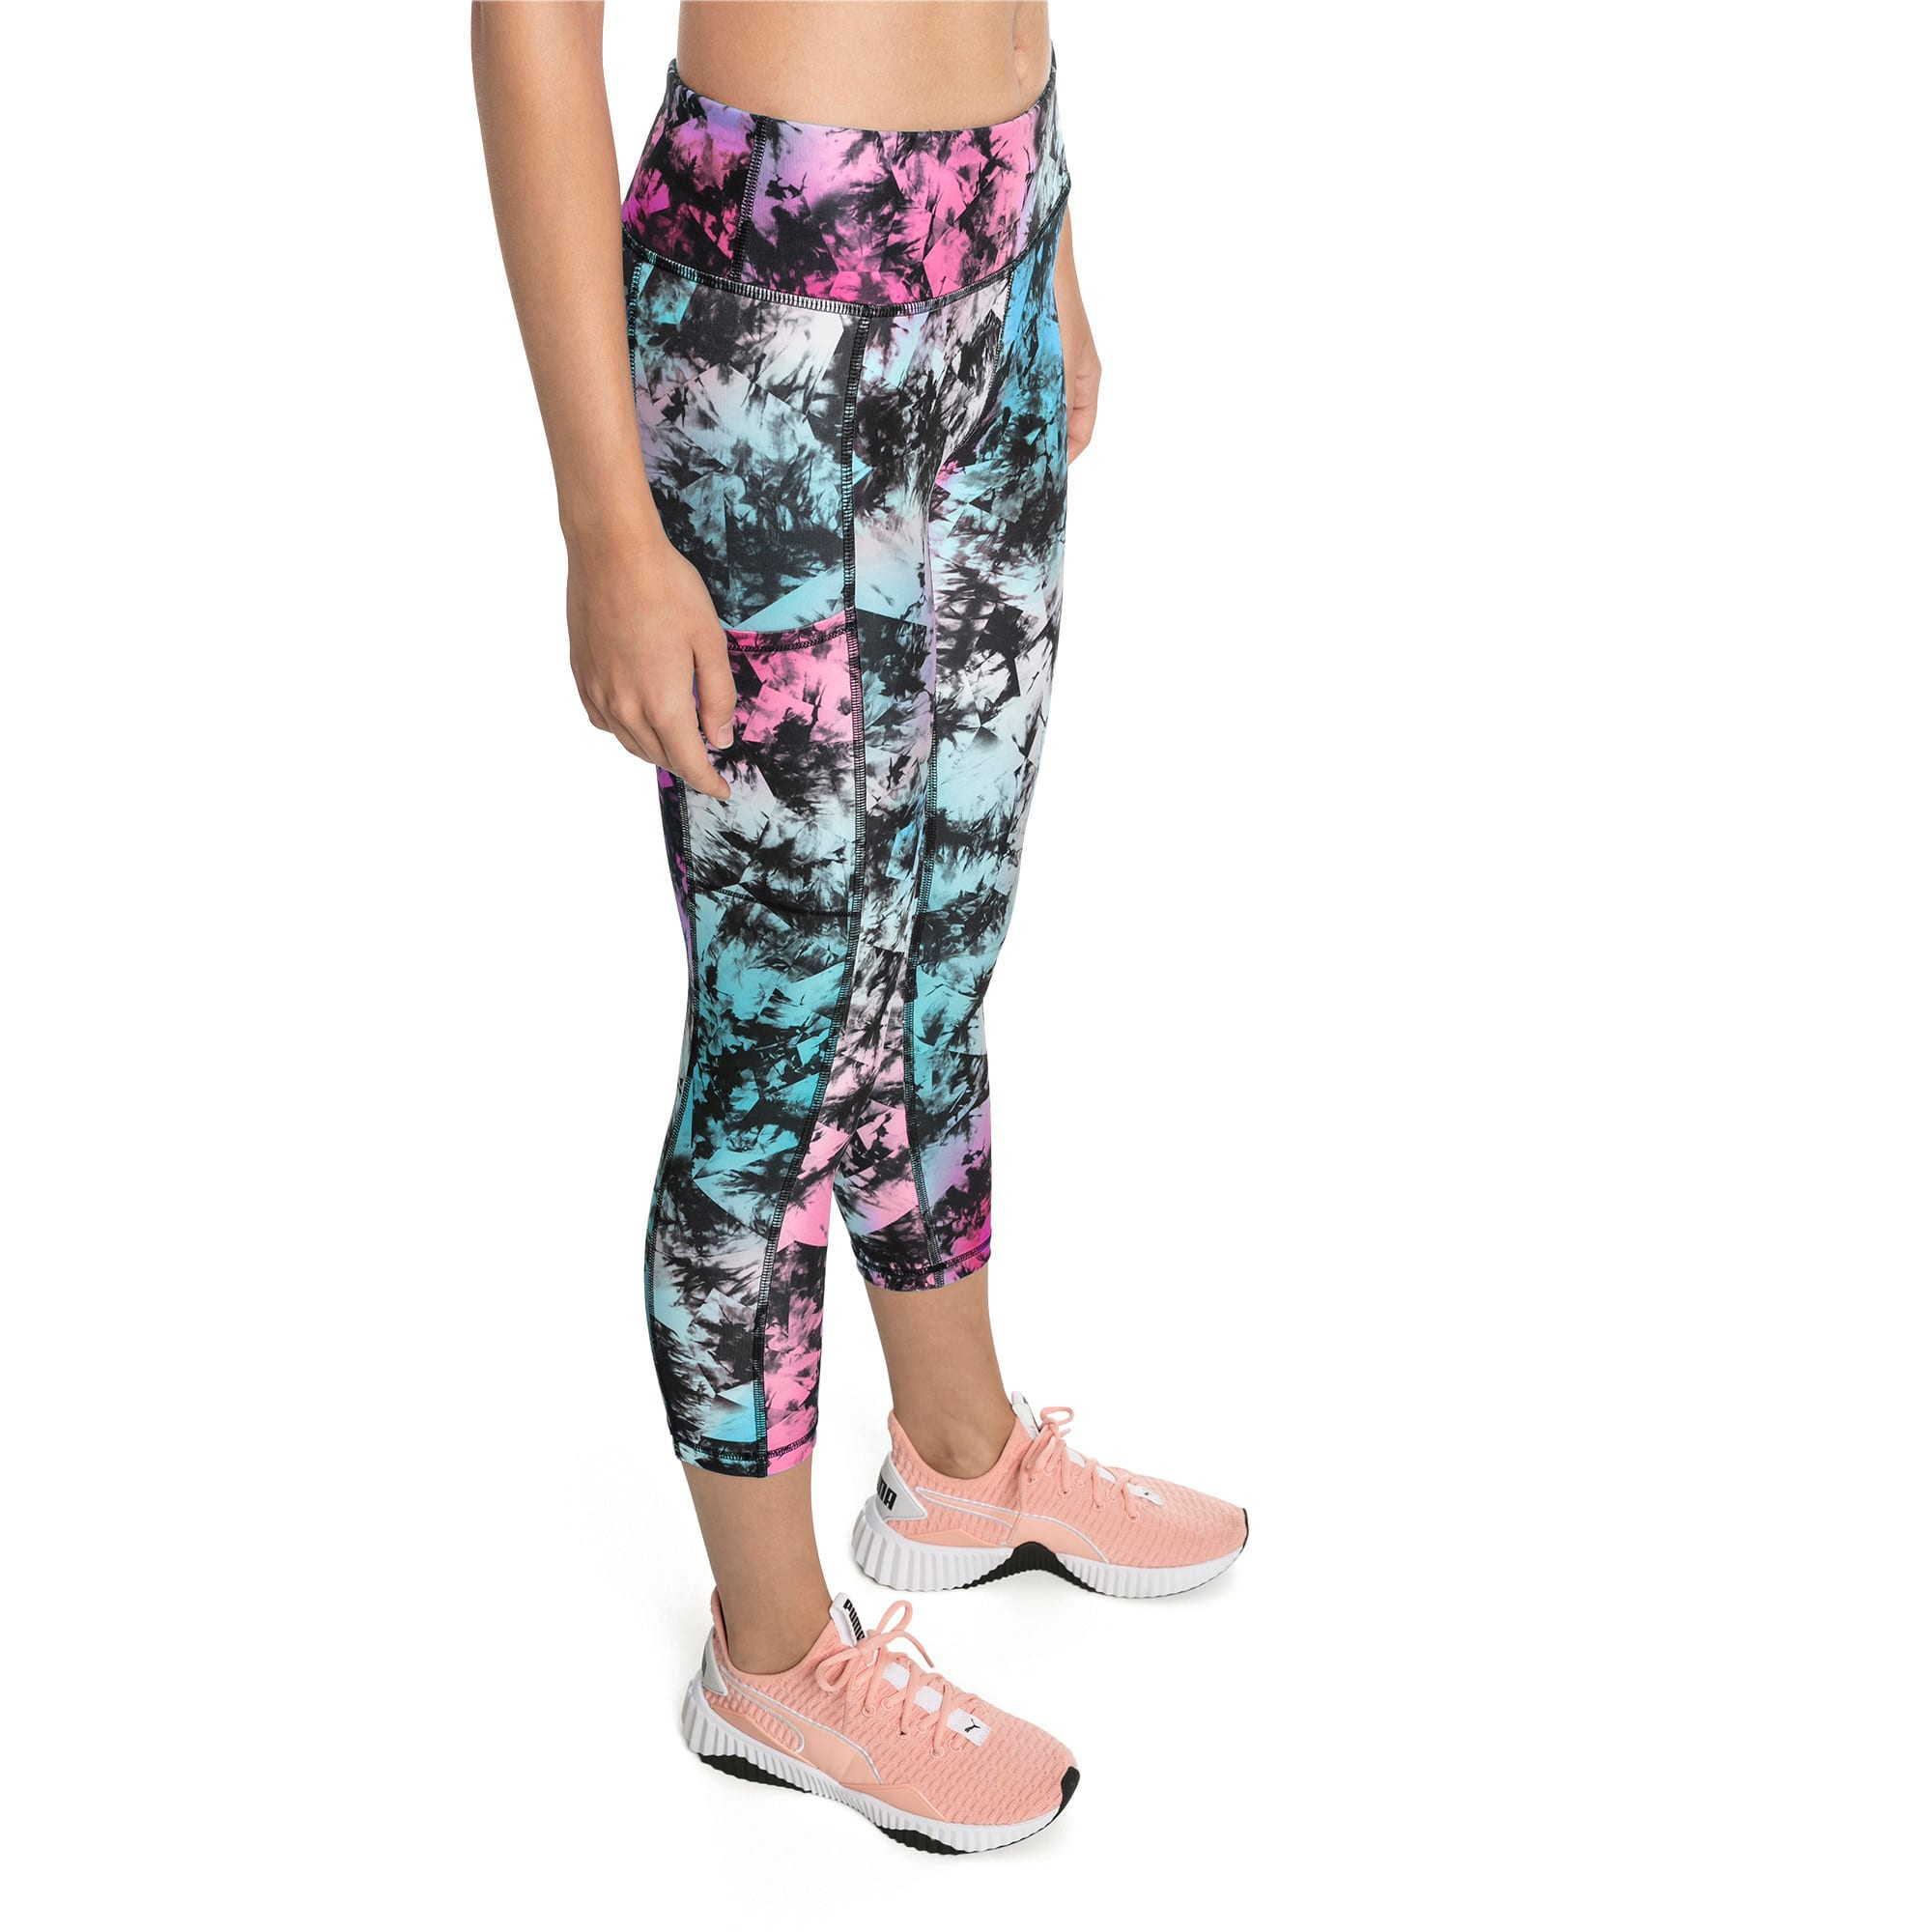 Thumbnail 1 of Stand Out Women's Training Leggings, puma black-Multi color, medium-IND